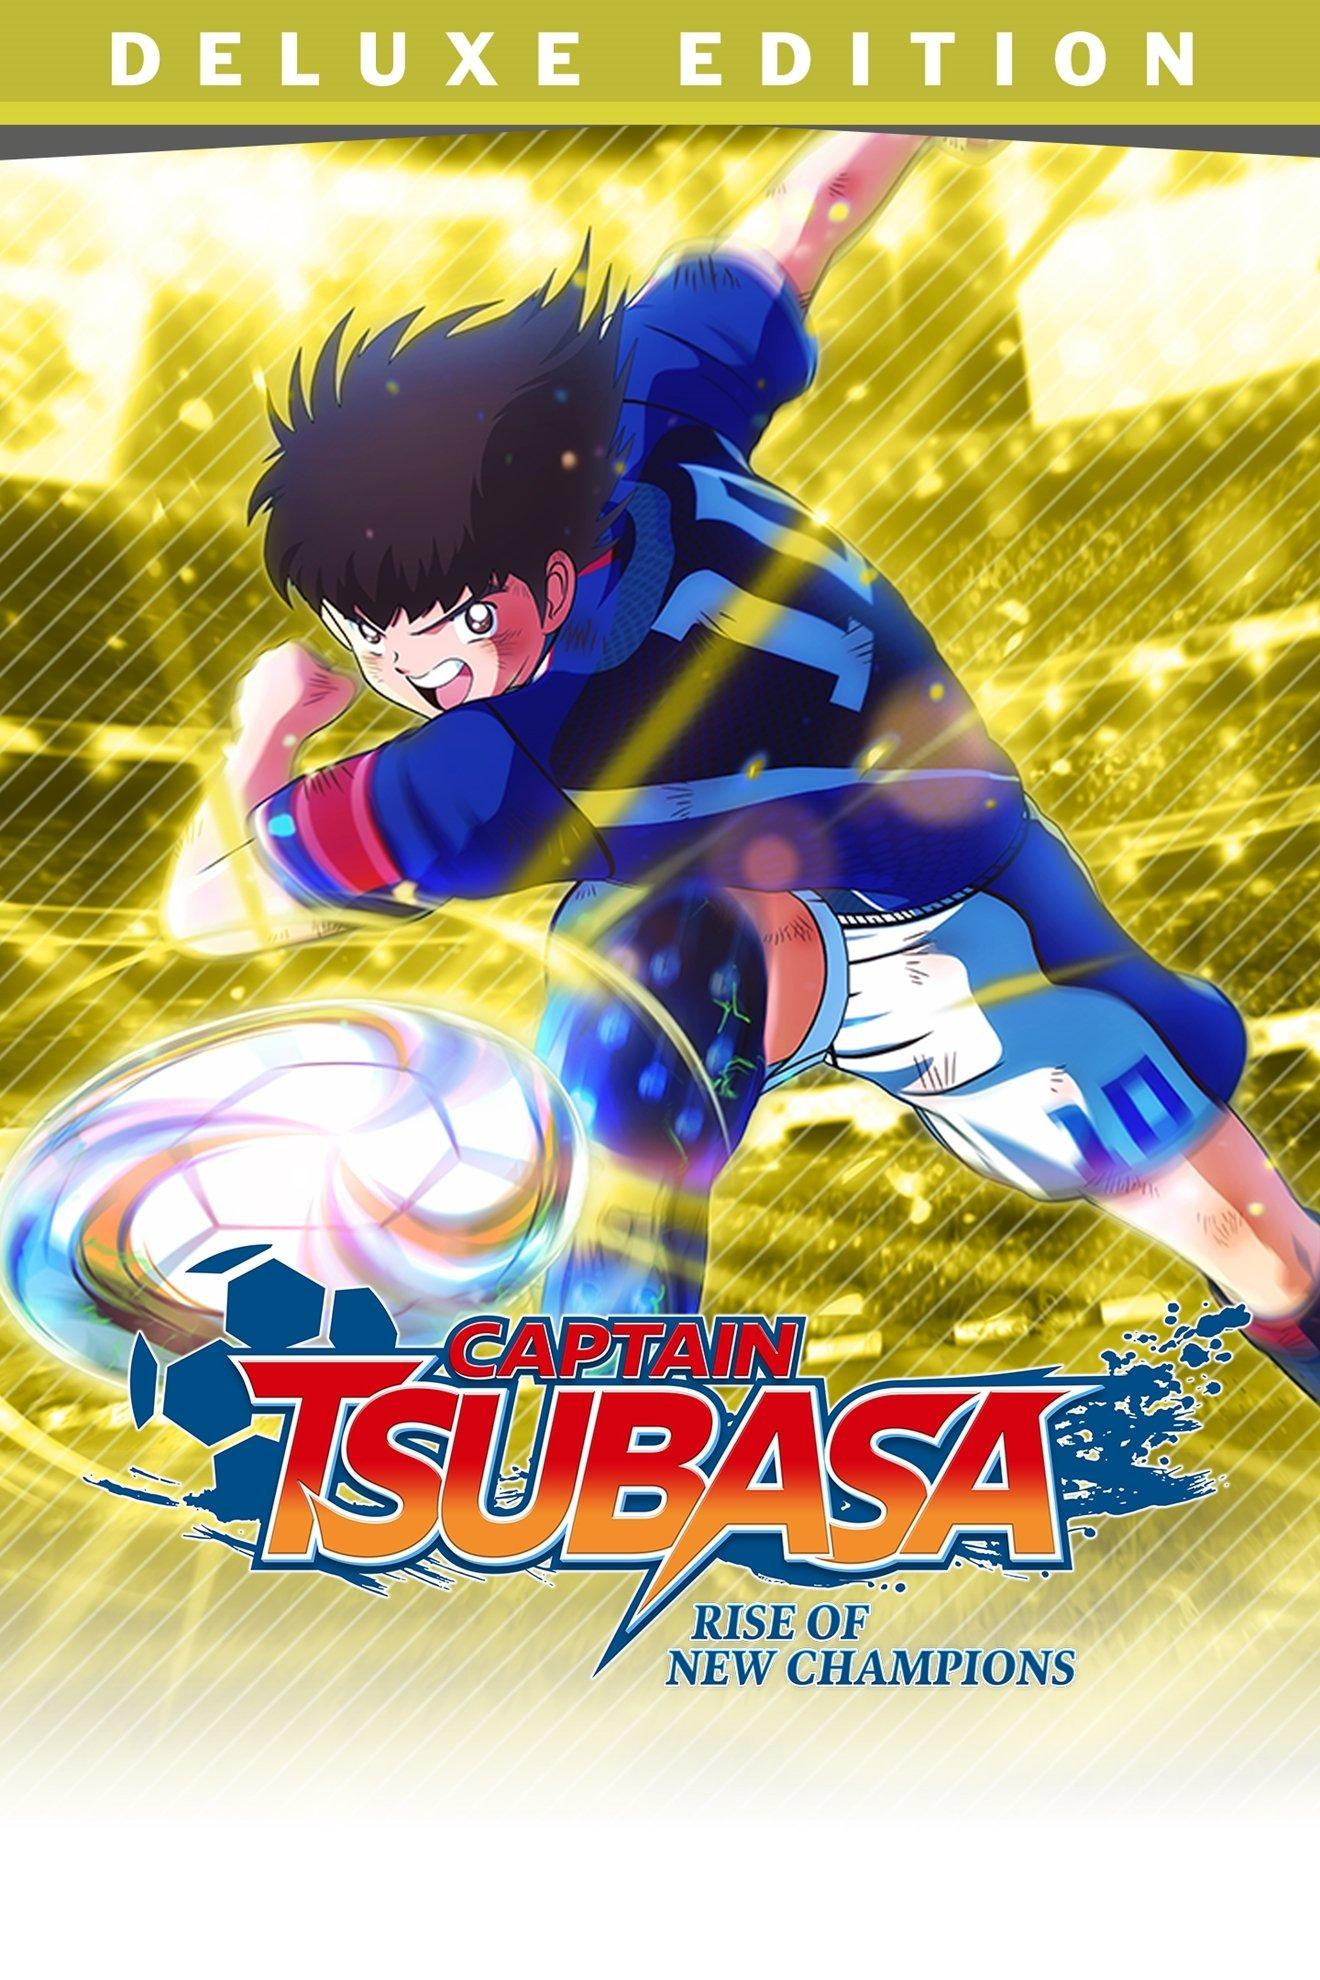 Captain Tsubasa: Rise of New Champions – Deluxe Edition